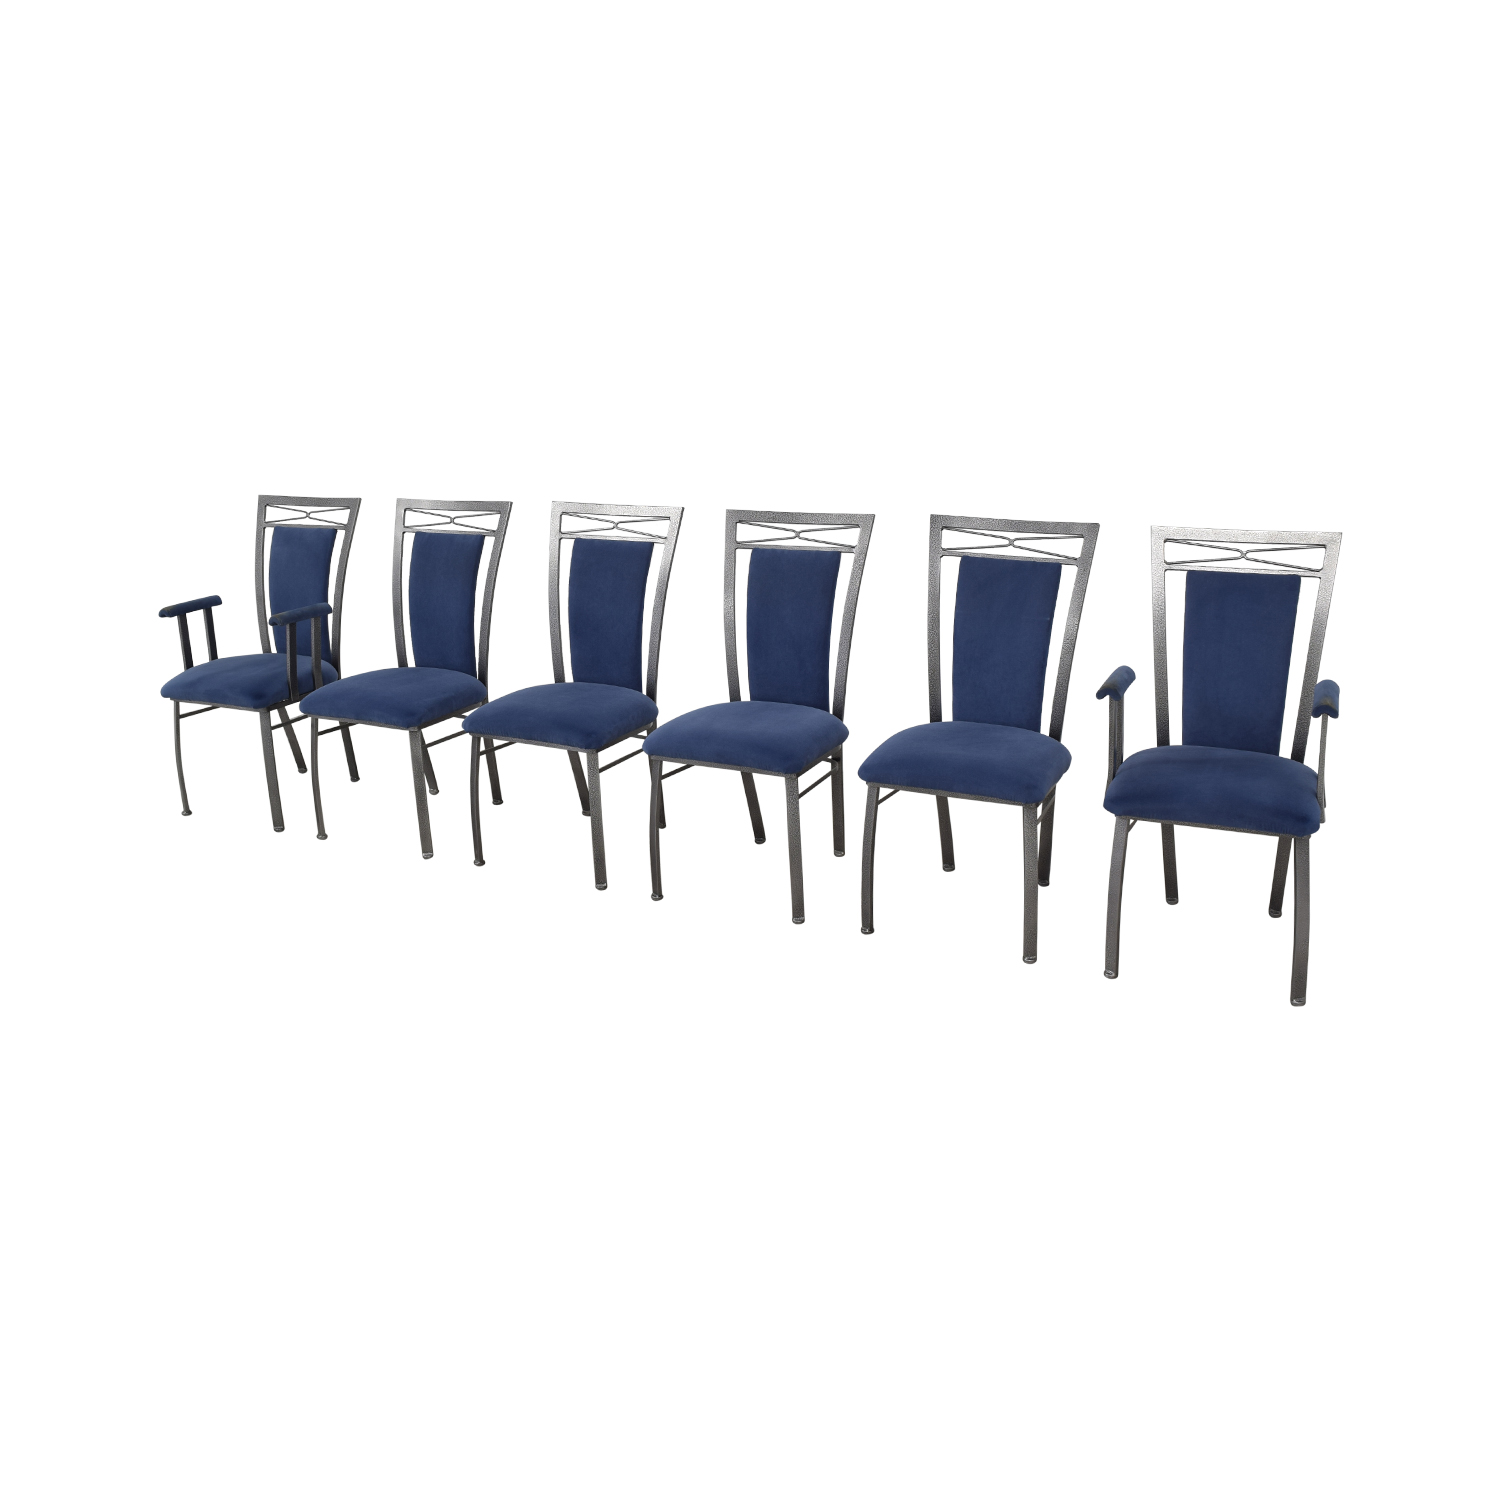 Precision Furniture Precision Furniture Dining Chairs blue and silver